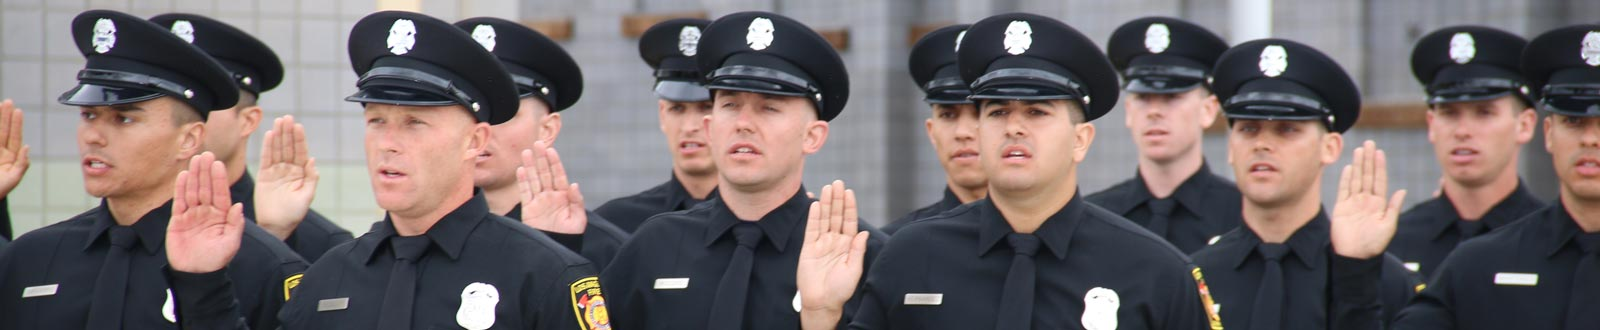 A new class of firefighters taking their oath